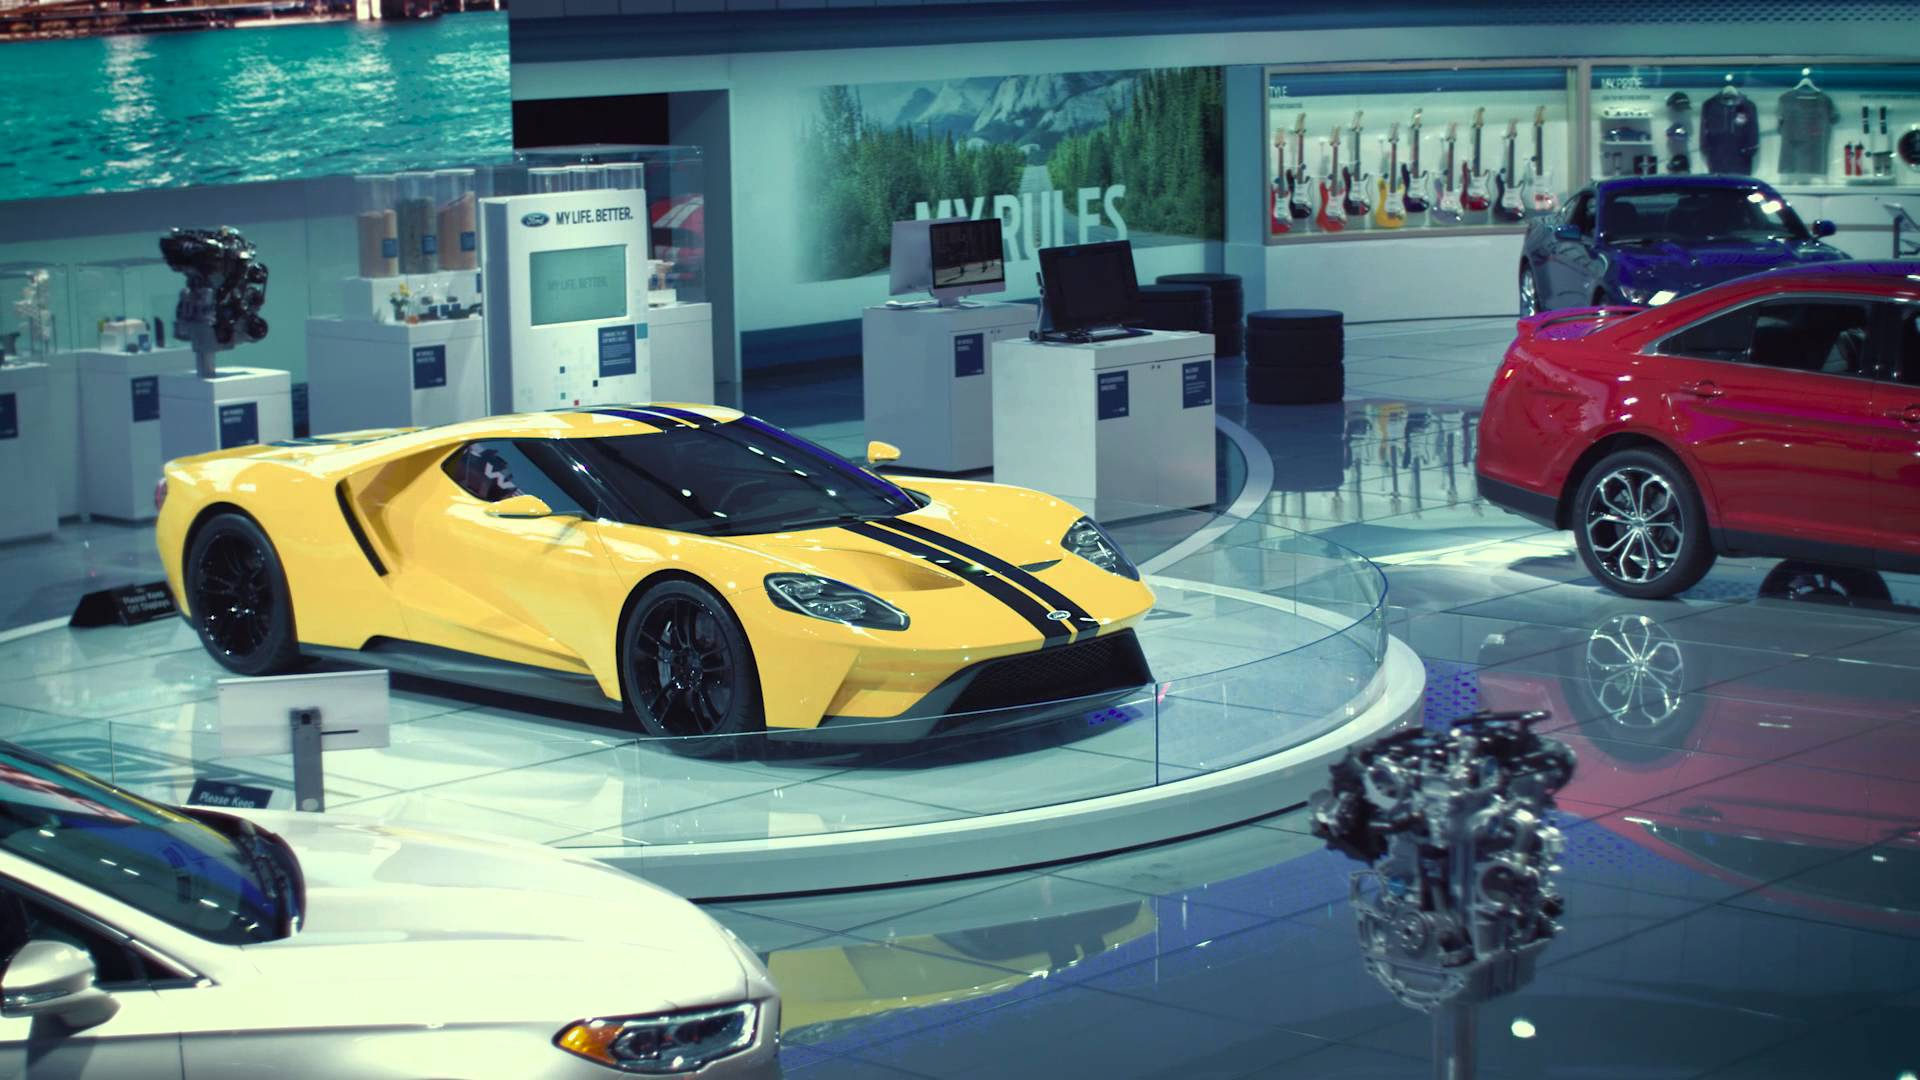 Cars Wallpapers: Car Exhibition Wallpapers High Quality